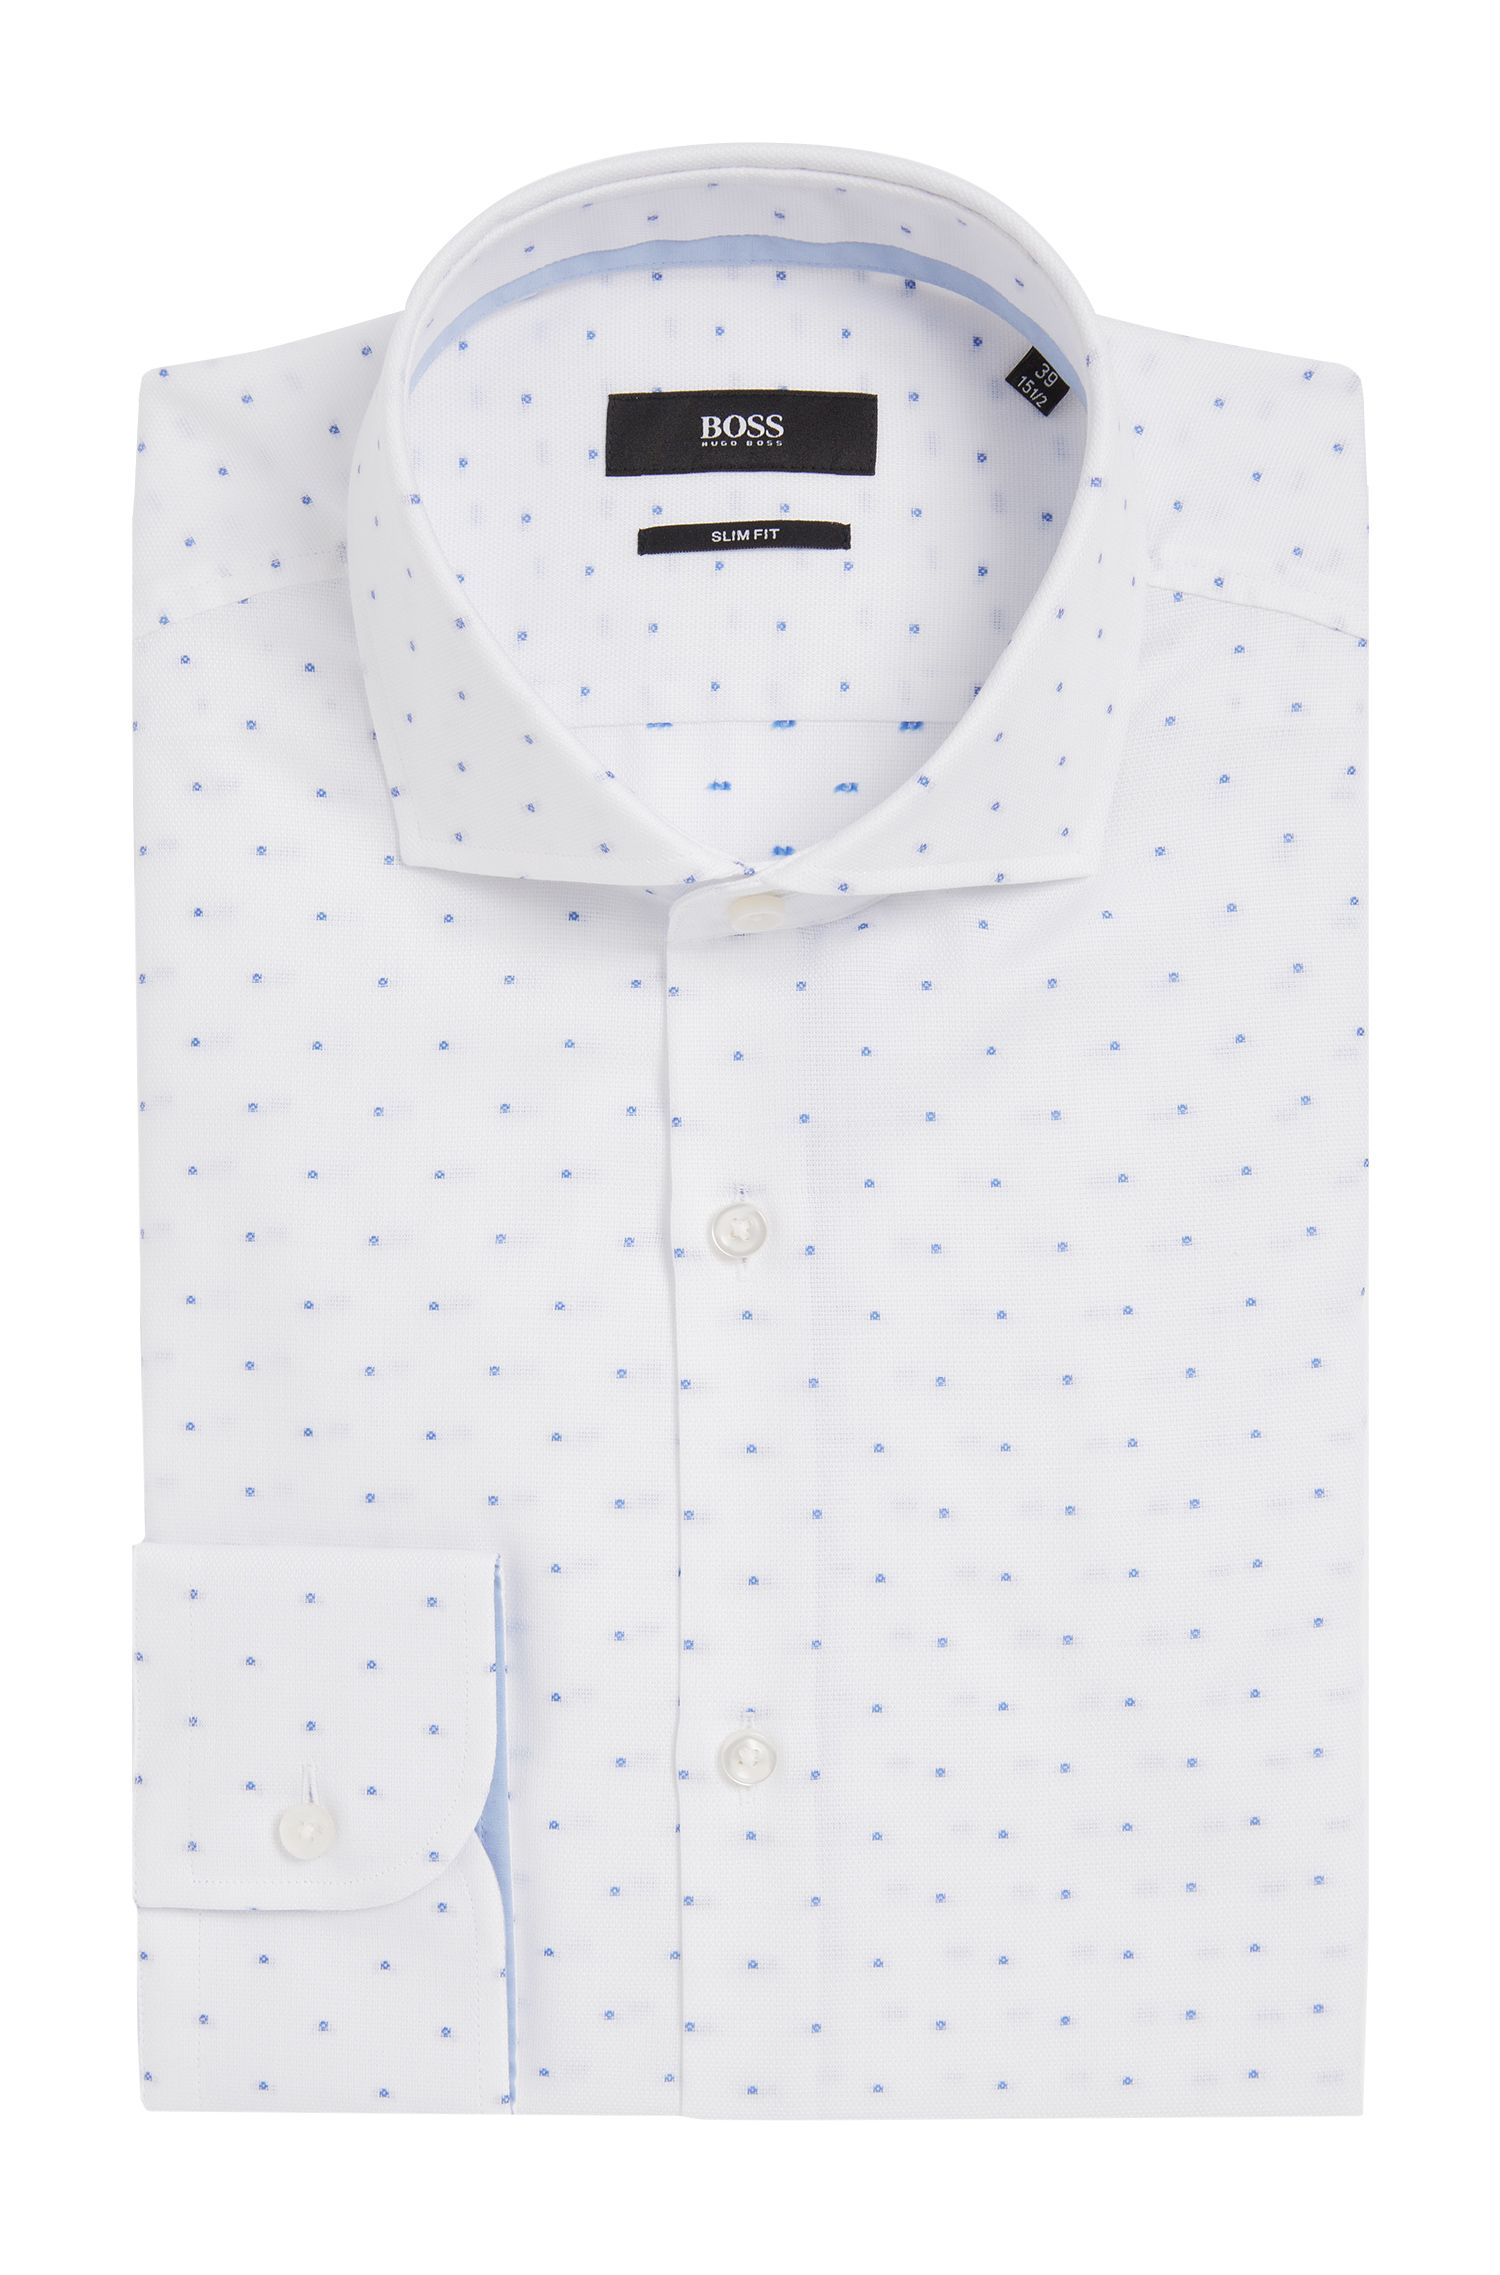 'Jery' | Slim Fit, Spread Collar Cotton Dress Shirt